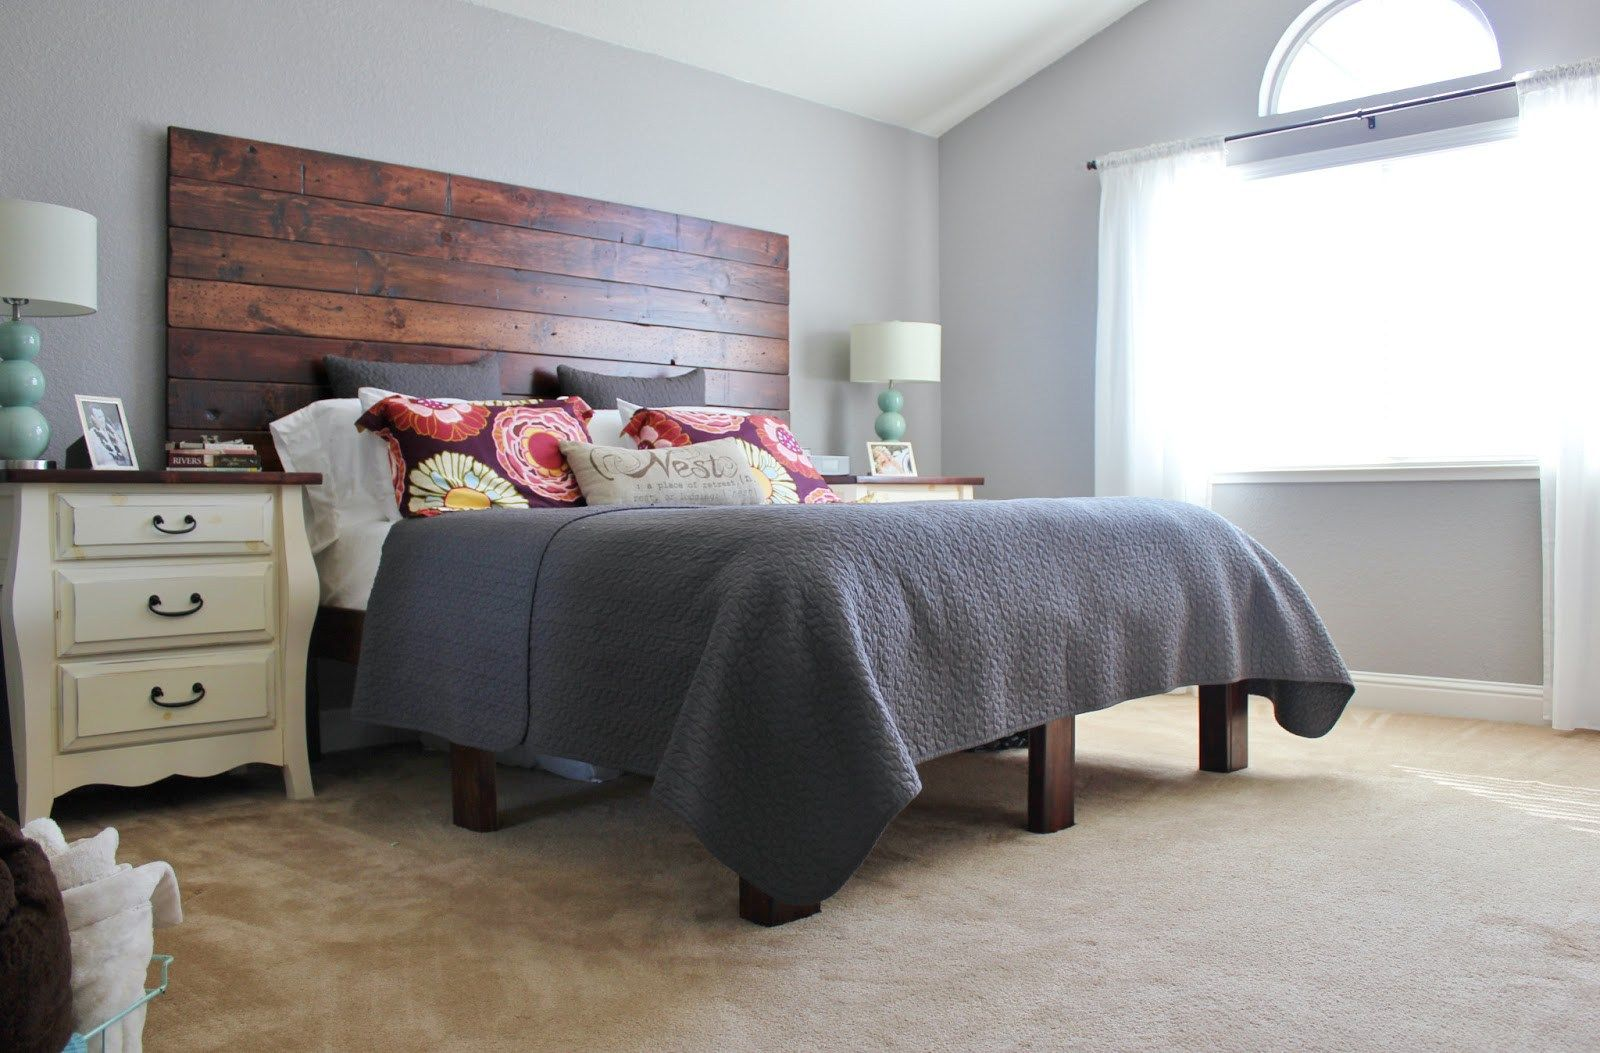 At Home With The Hansens Diy The 100 Platform Bed Box Spring within ...